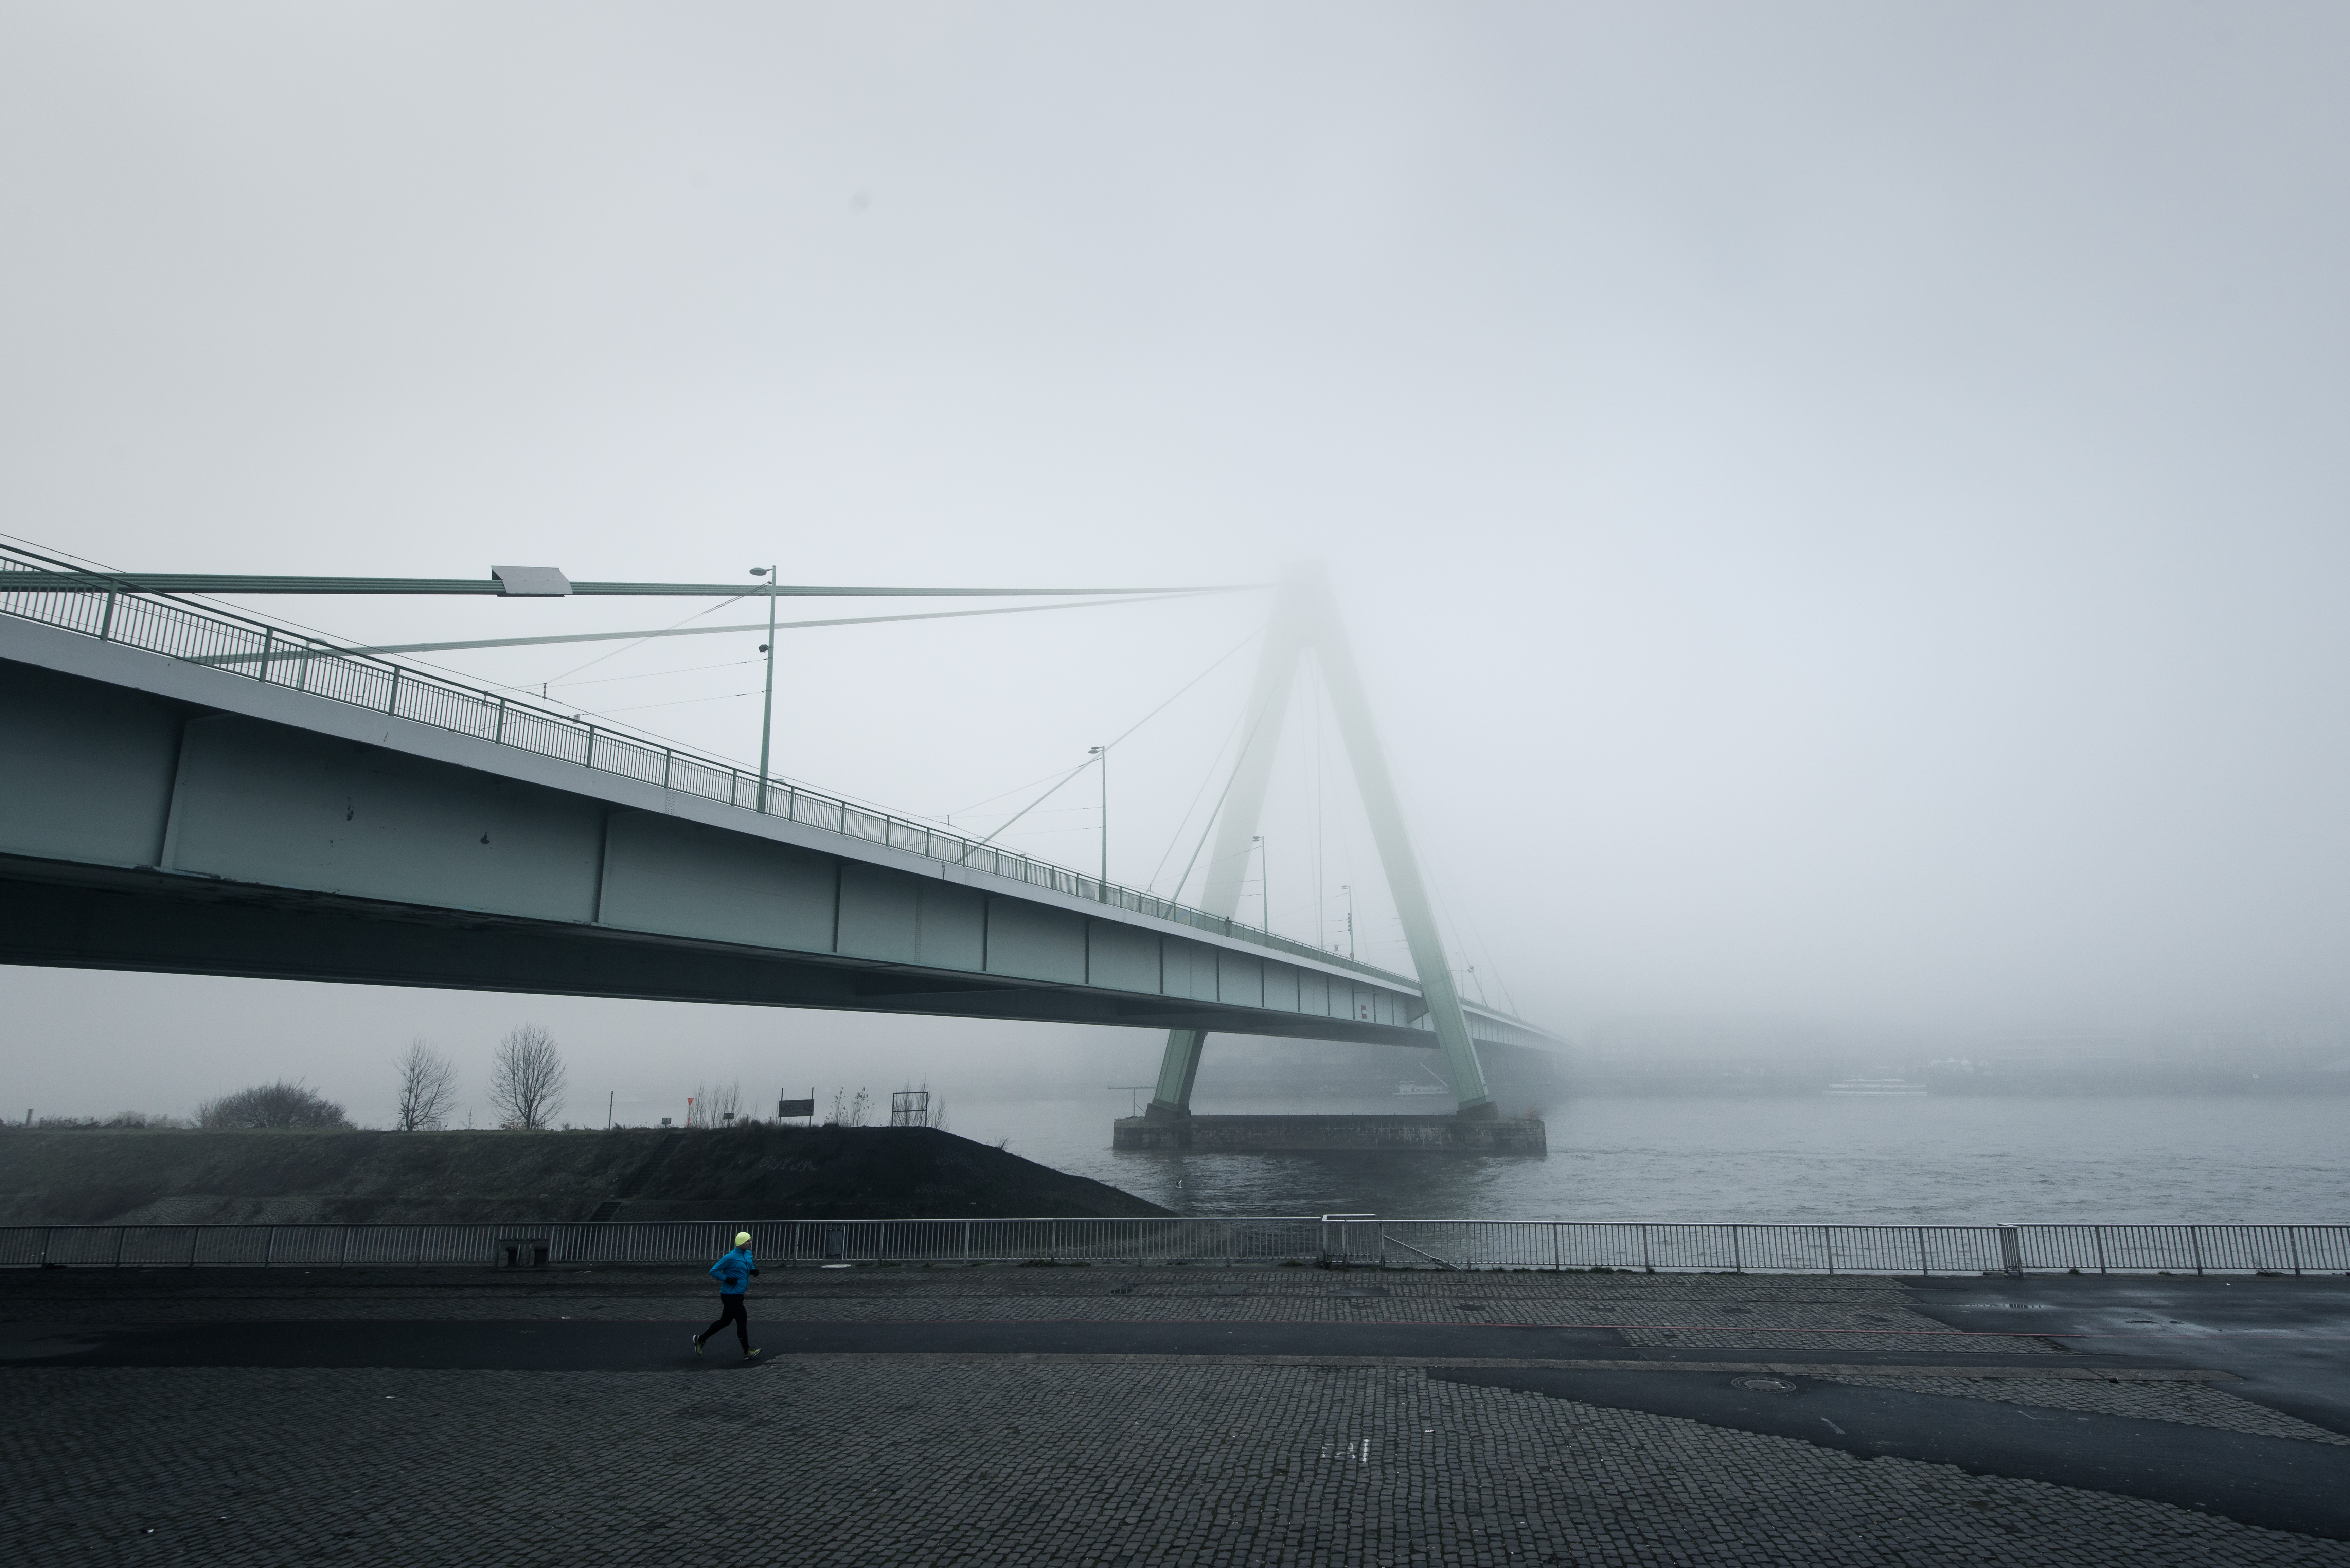 Weather Gallery - Fog